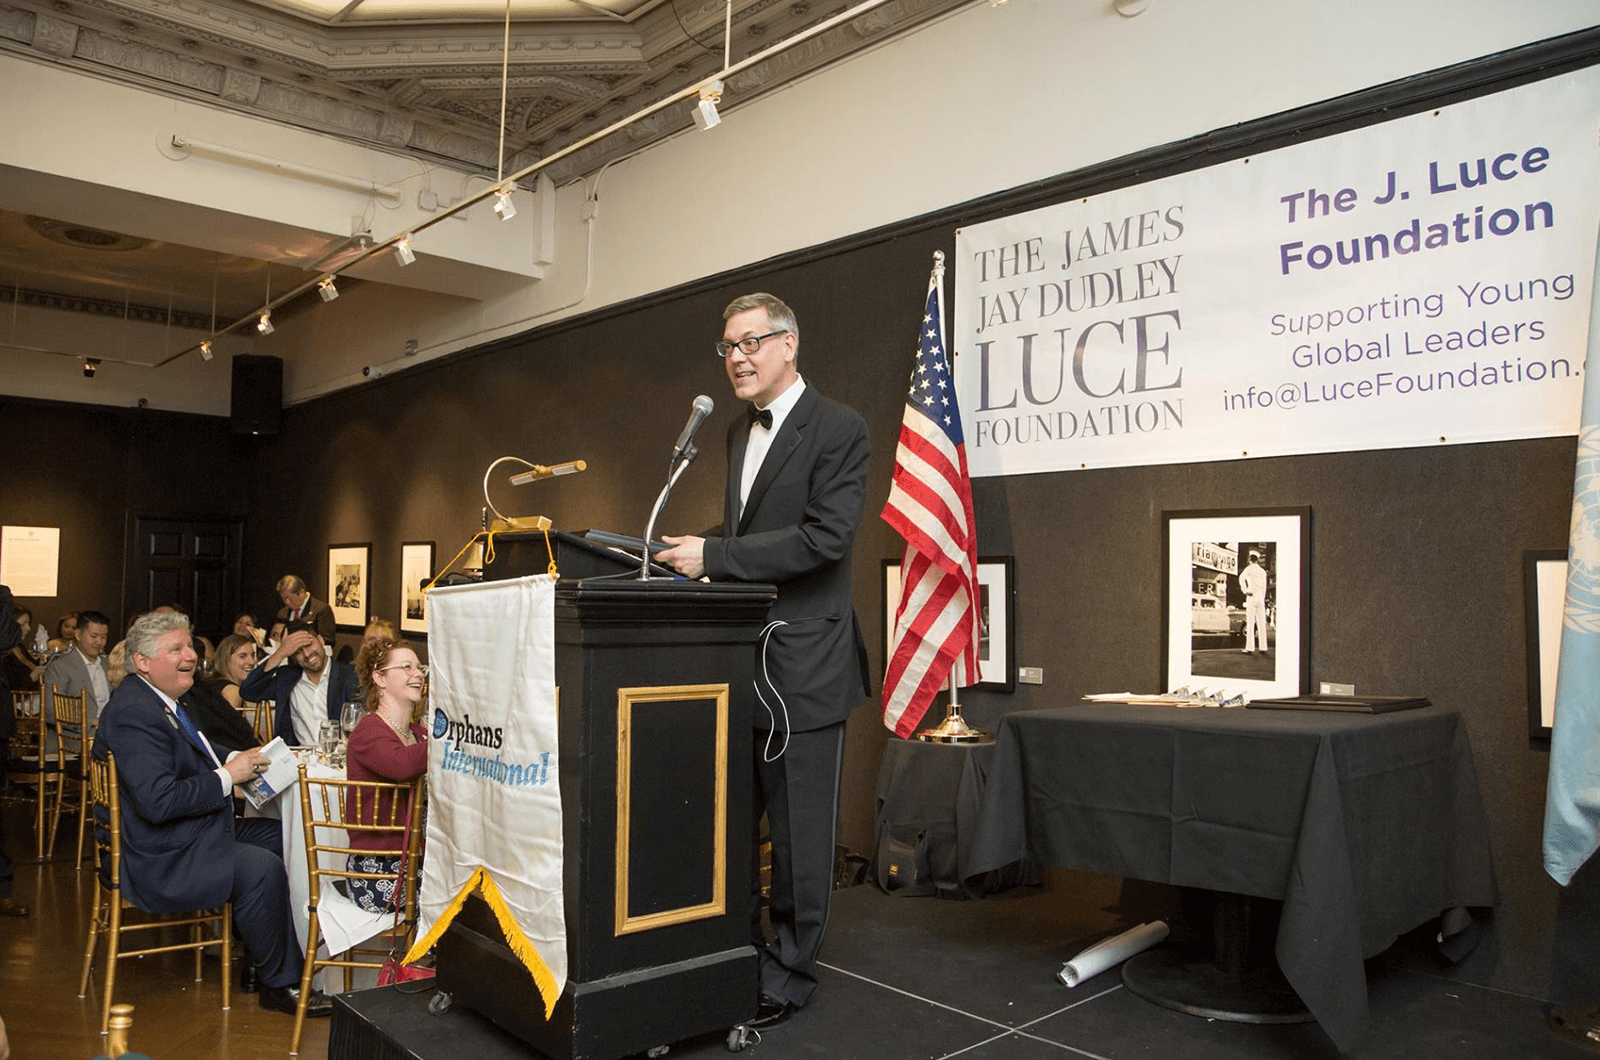 Jim Luce speaks to a crowd on behalf of the Jim Luce Foundation, supporting the Young Global Leaders program.